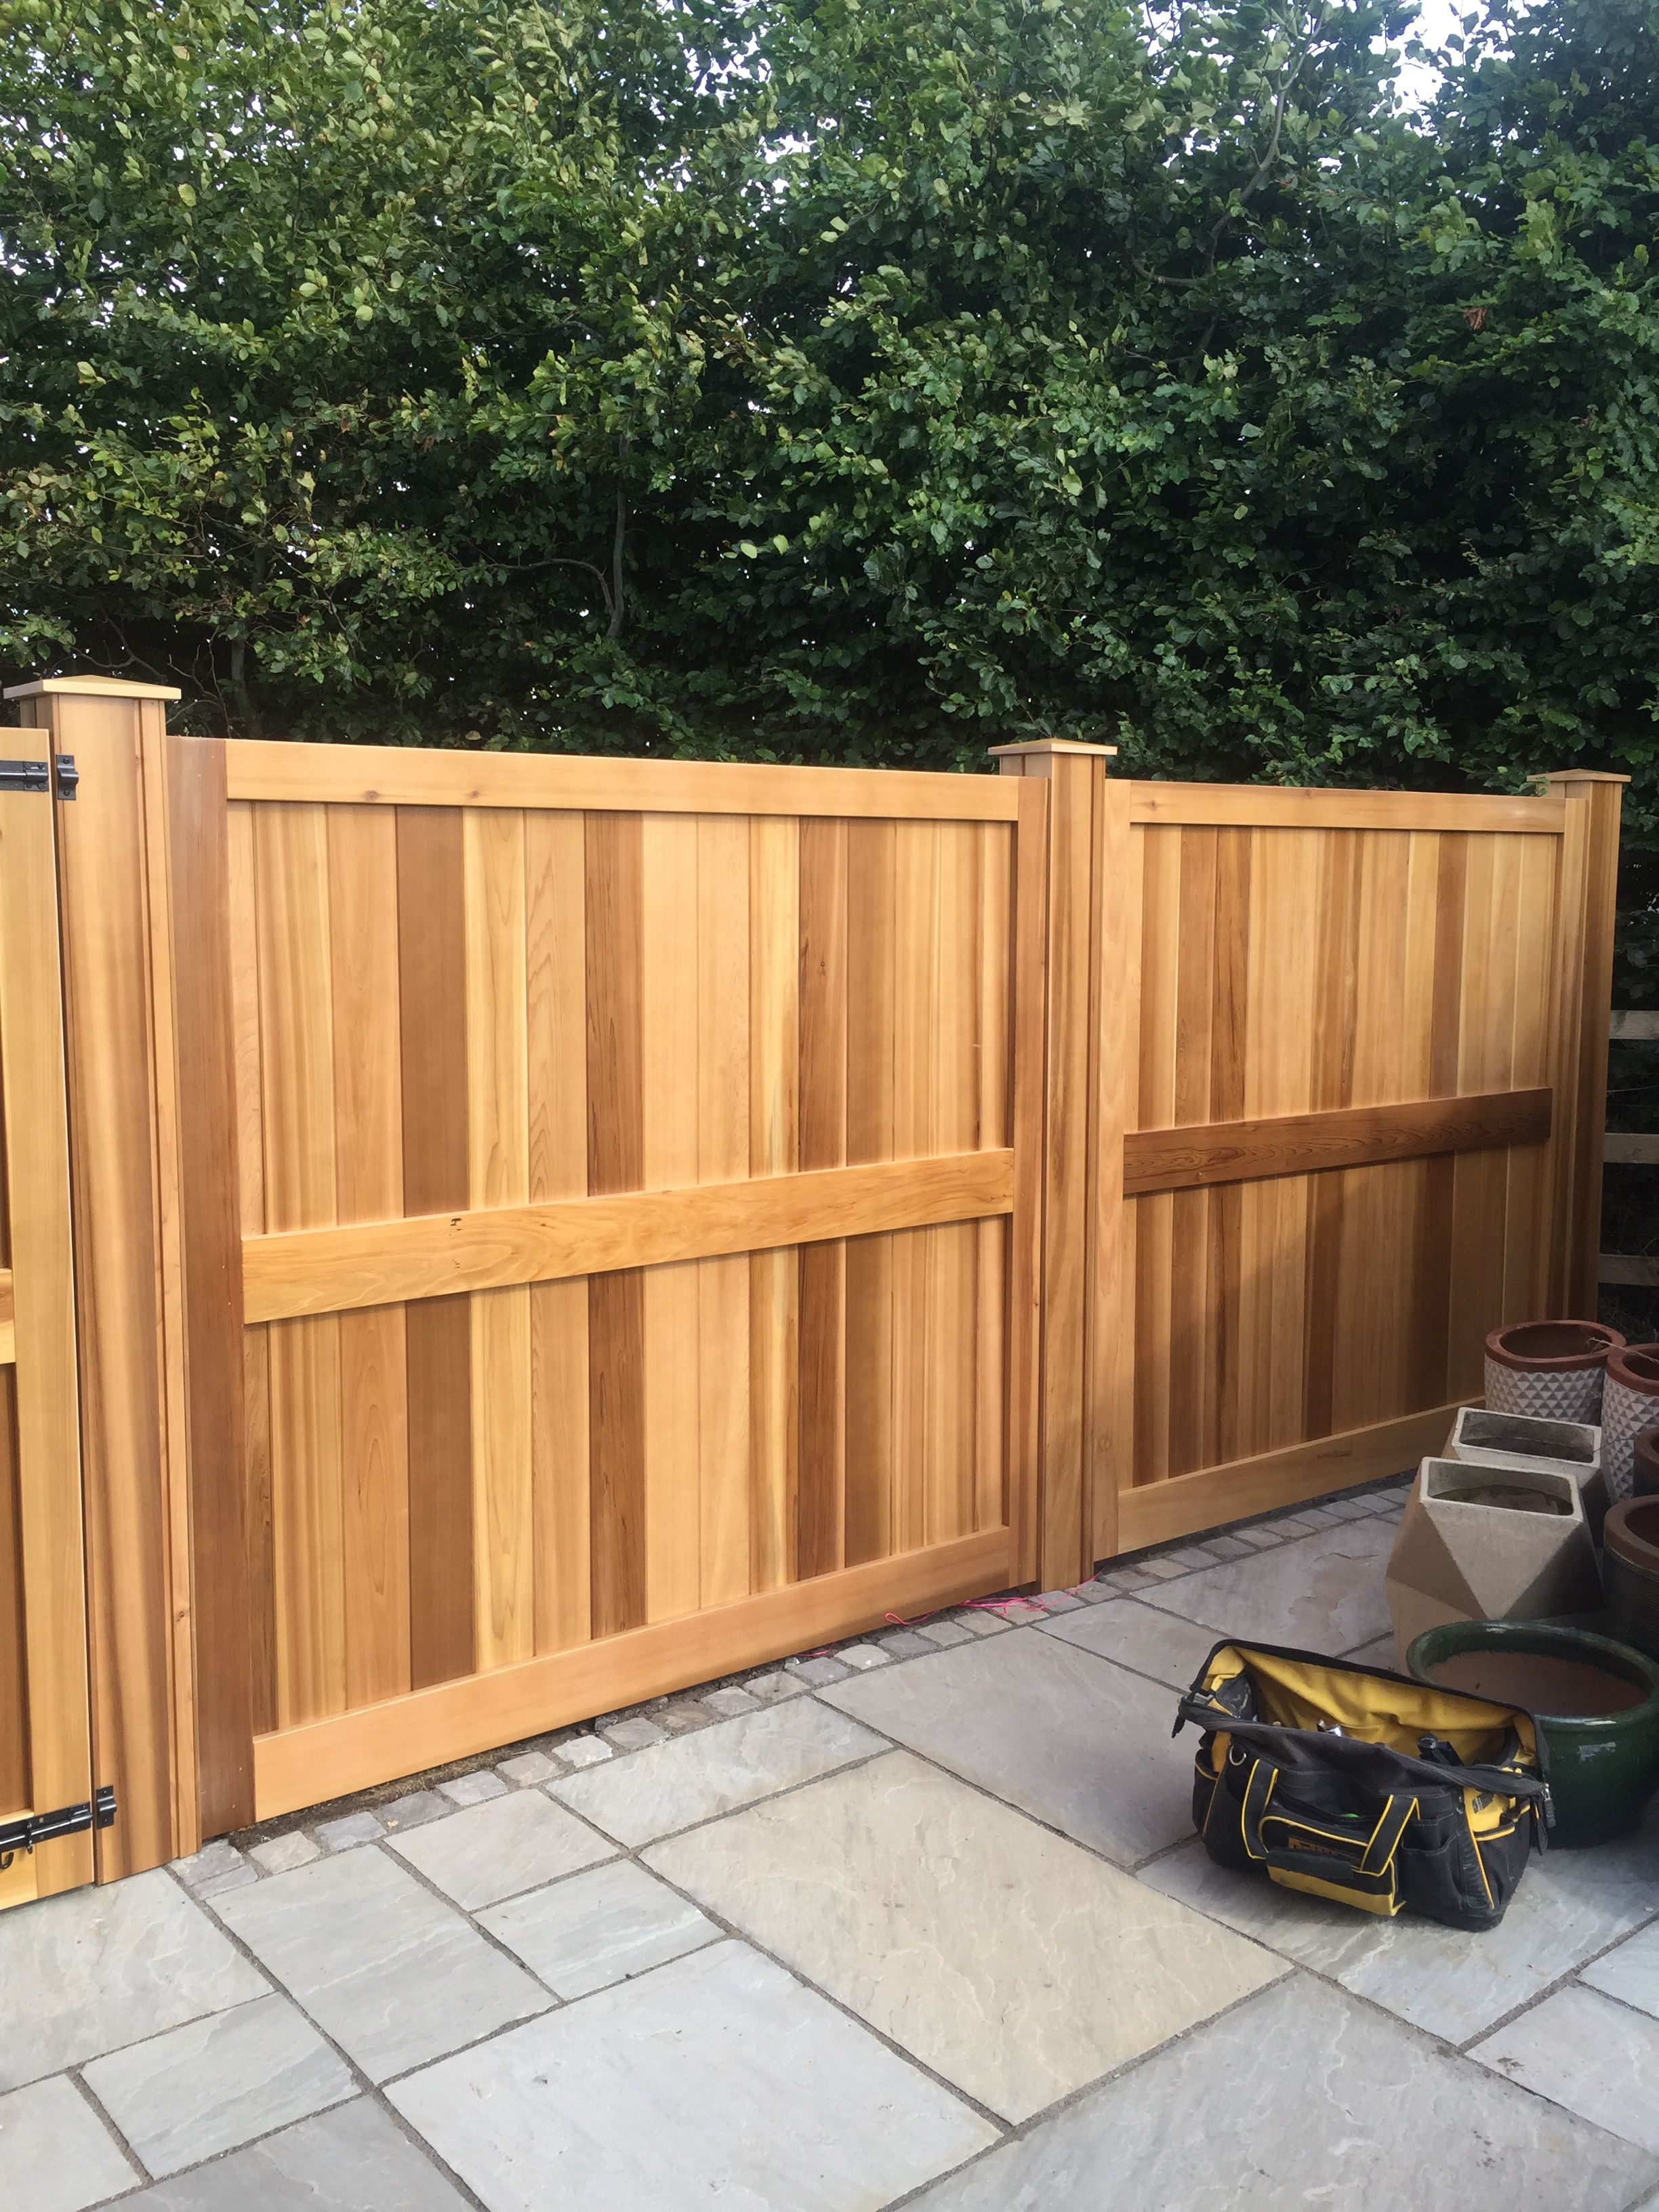 This fabulous bespoke cedar dividing fence with gate has ...